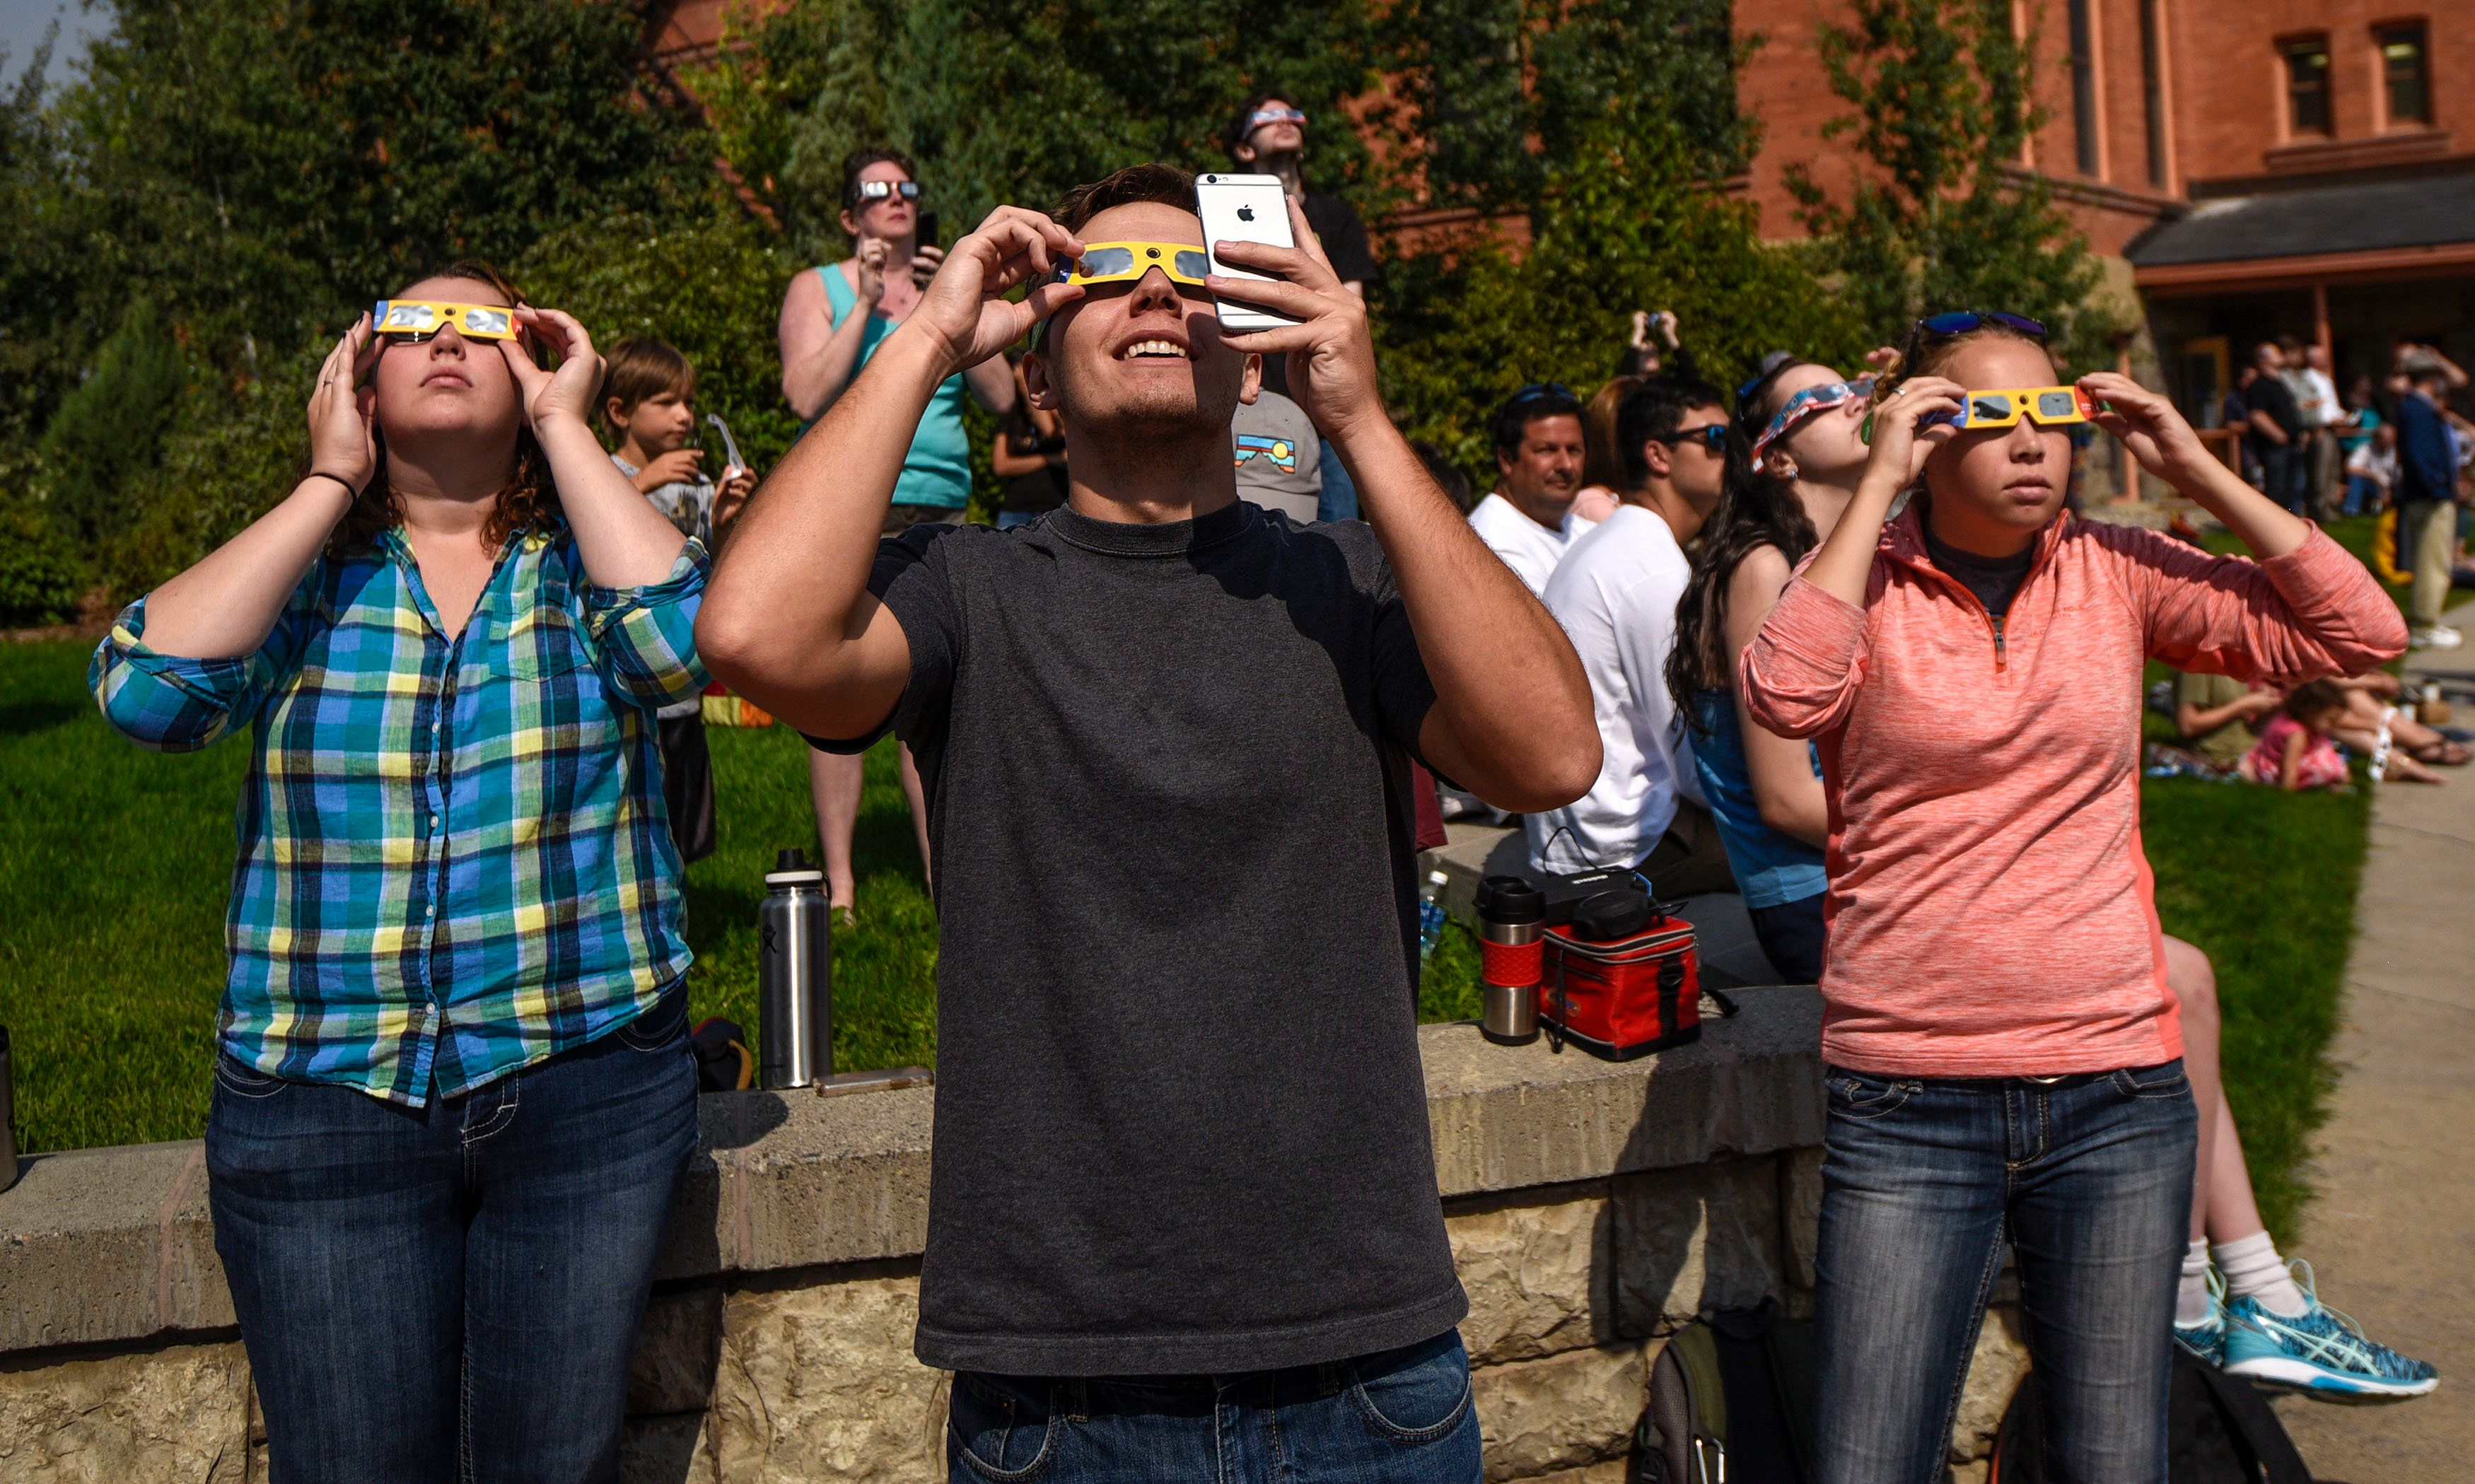 BOZEMAN, MT - AUGUST 21:  Students and onlookers look toward the sun through eclipse glasses on the campus of Montana State University on August 21, 2017 in Bozeman, Montana.  (Photo by Leigh Vogel/WireImage)